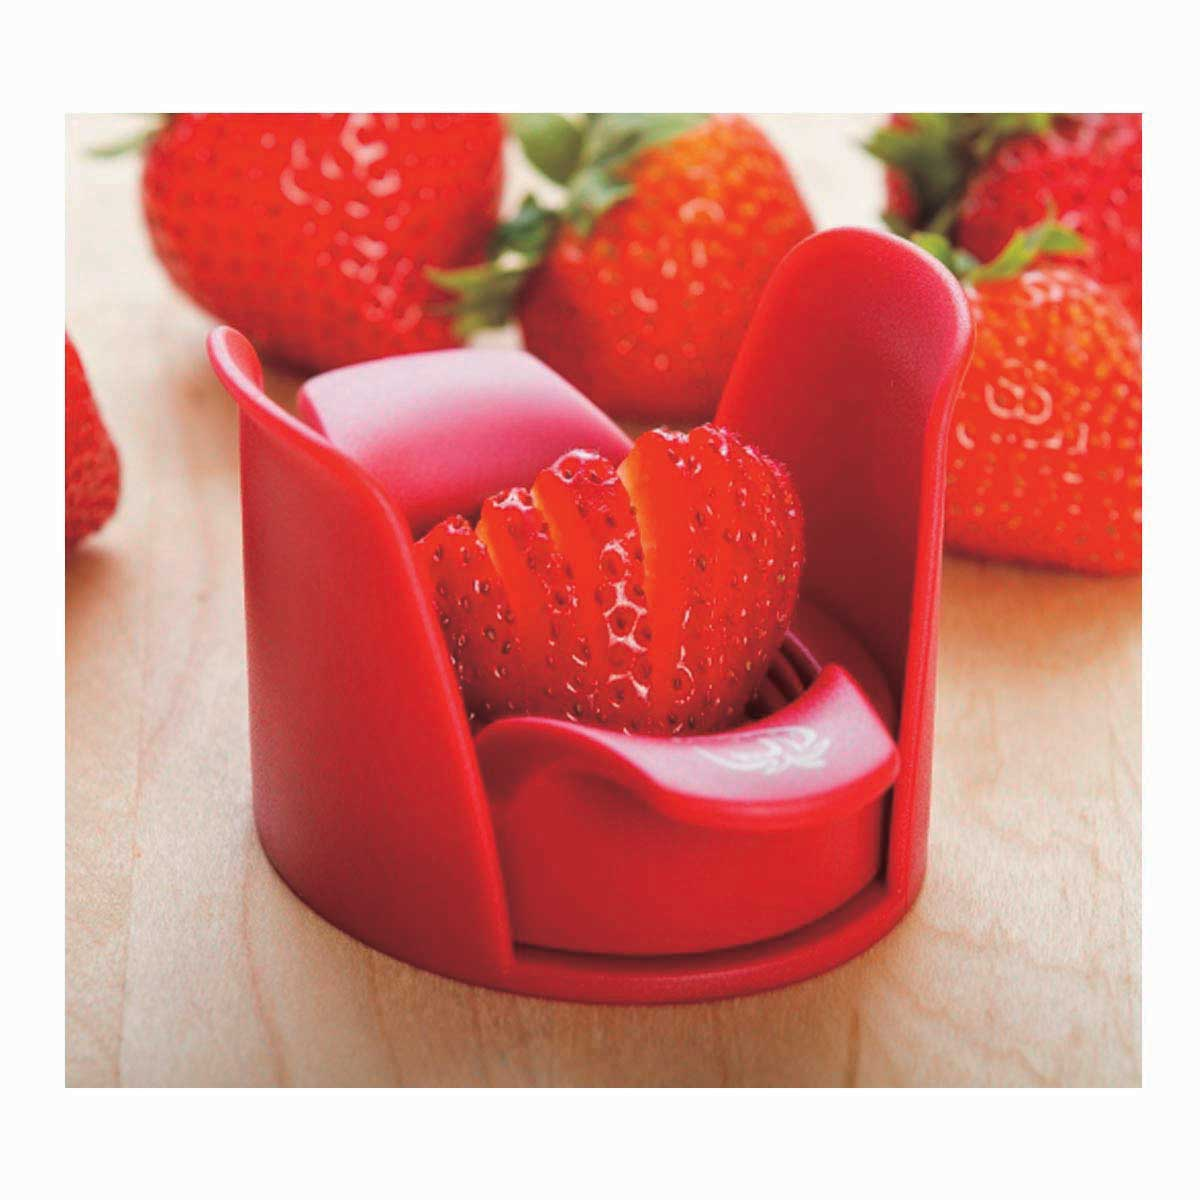 Strawberry Slicer - Qty. each